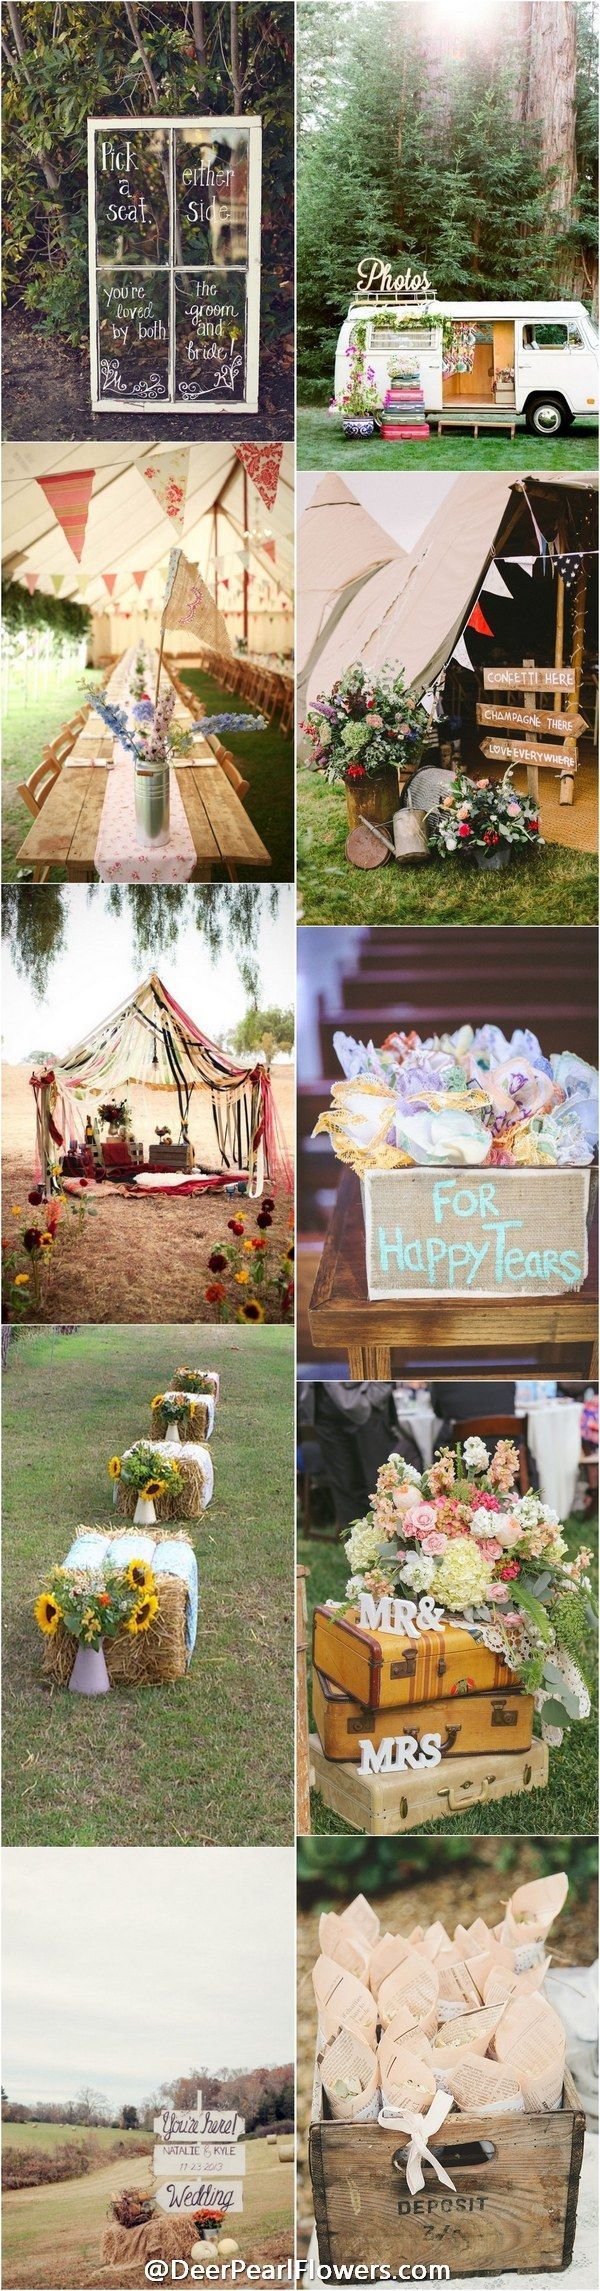 246 best vintage weddings images on pinterest vintage weddings